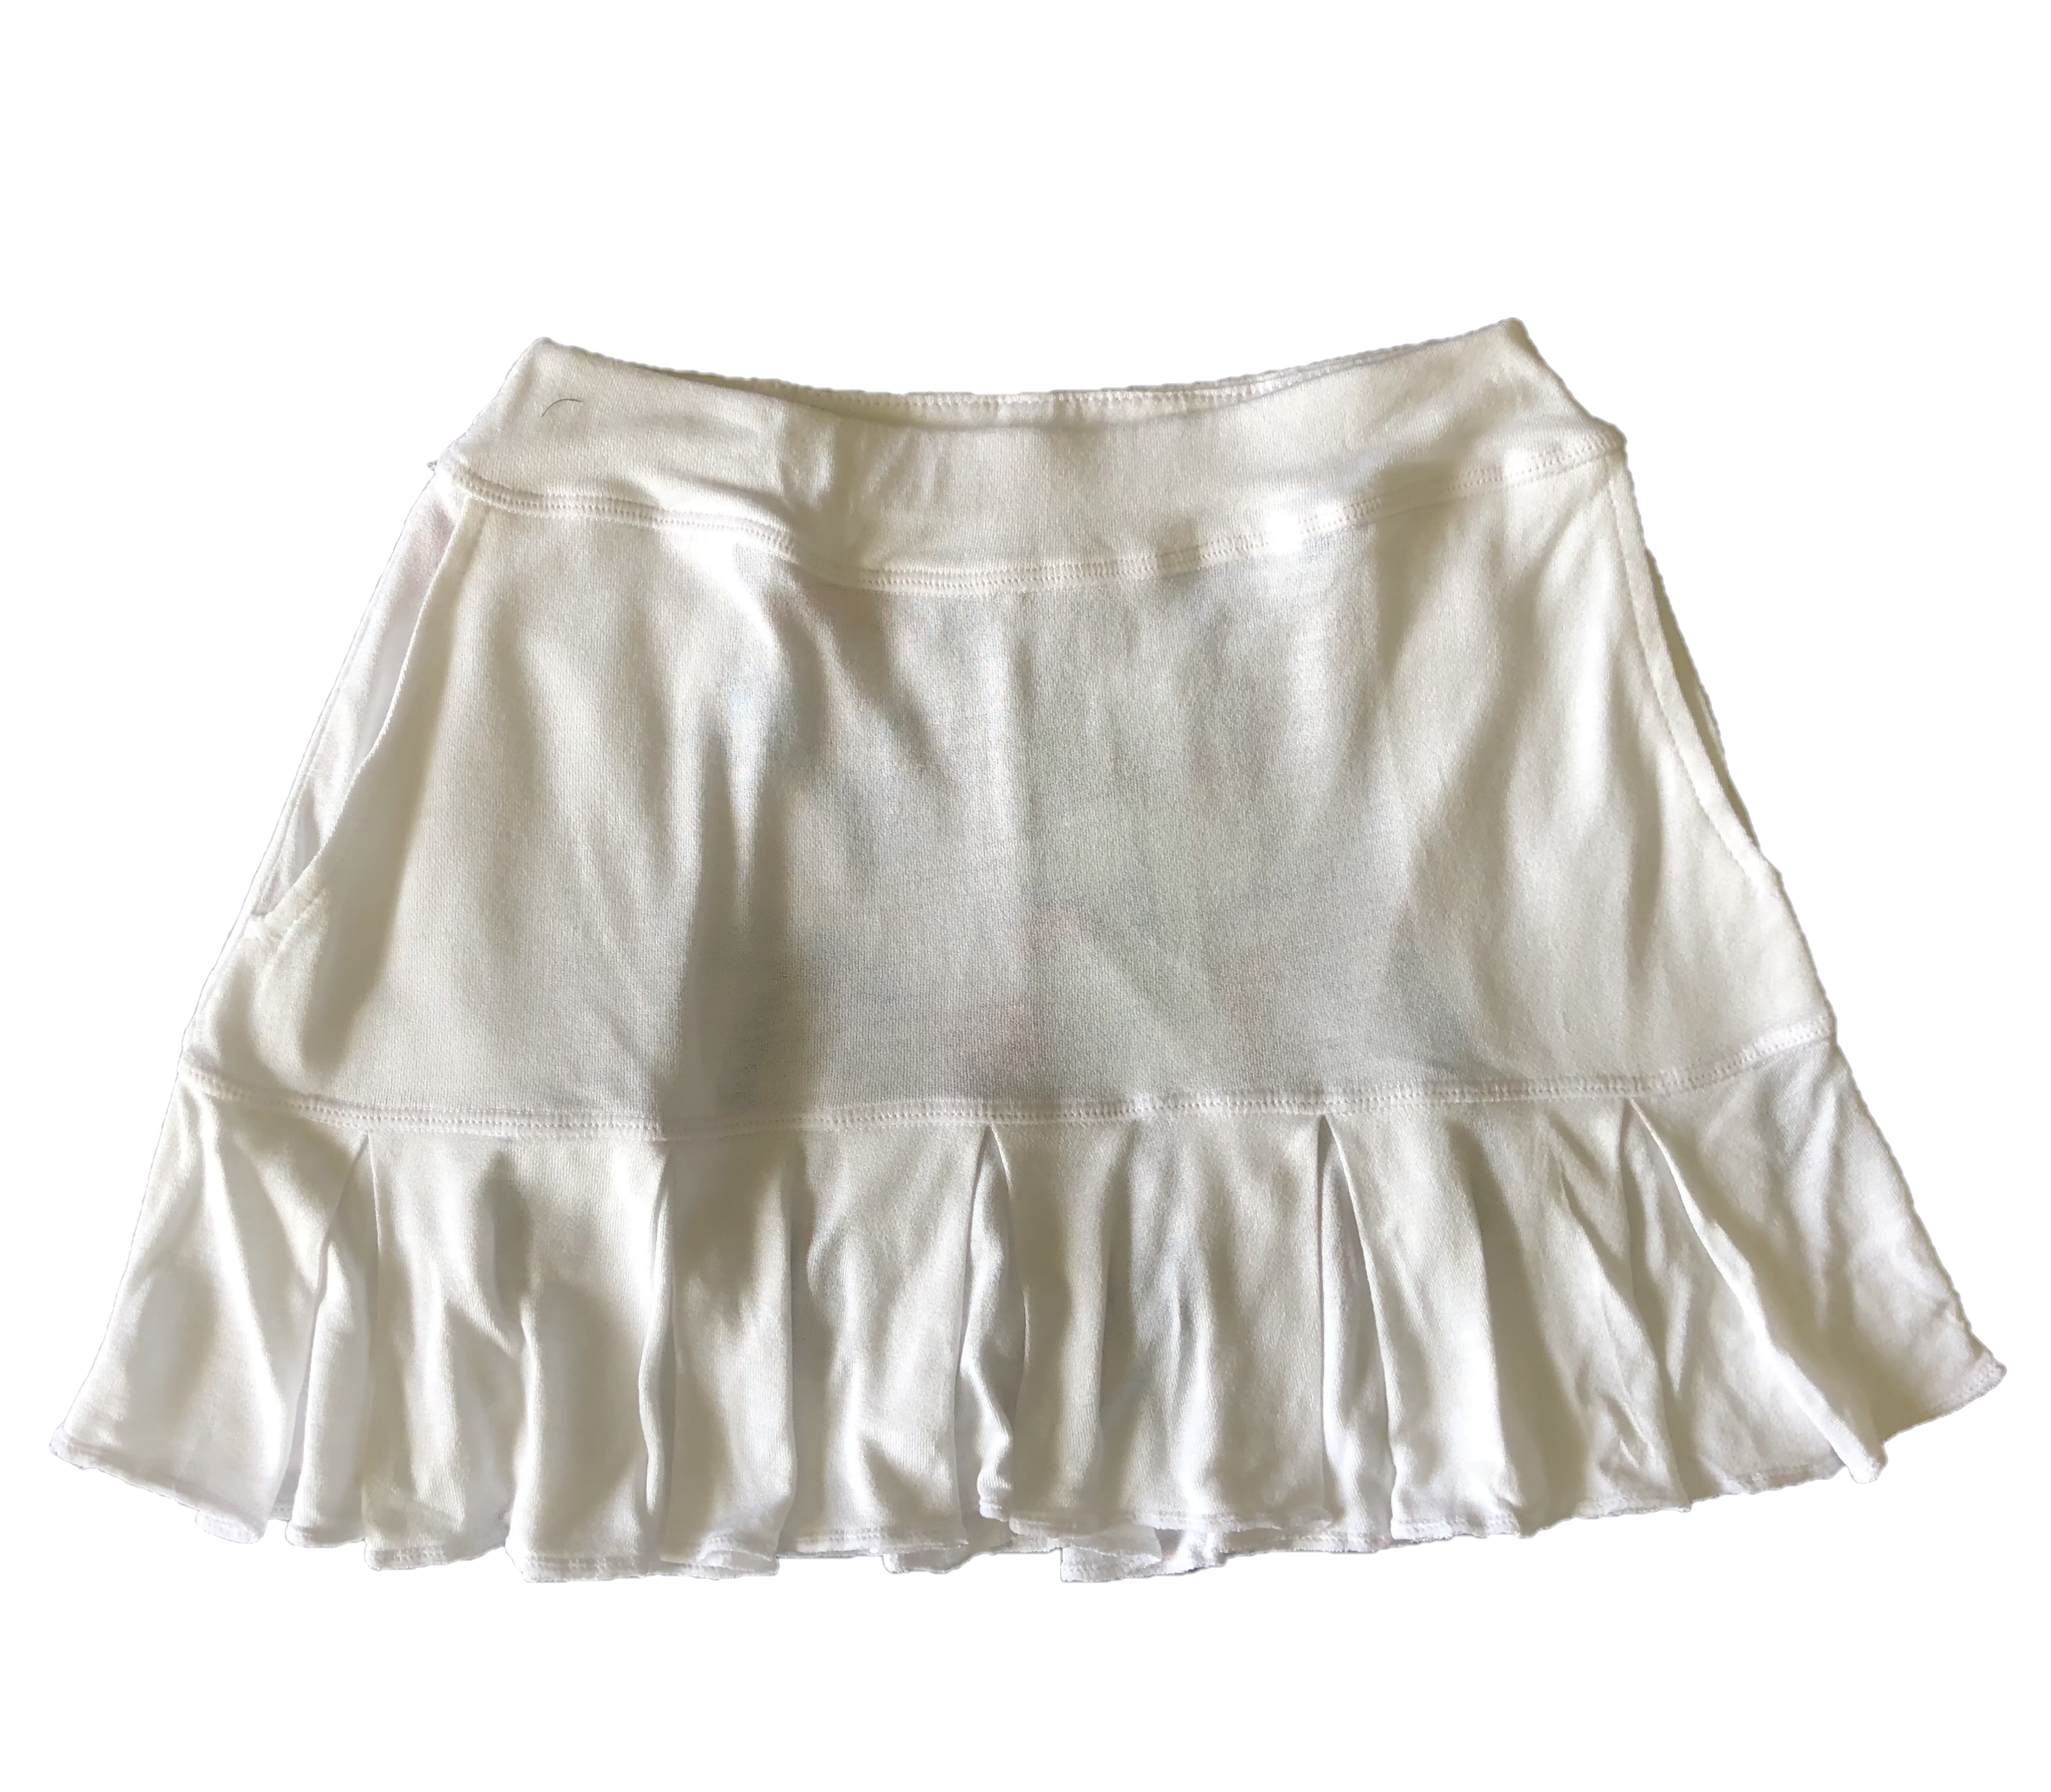 LS-064    Skirt Ultra Soft Feel White With All Around Swing Pleats And 2 Rear Pockets